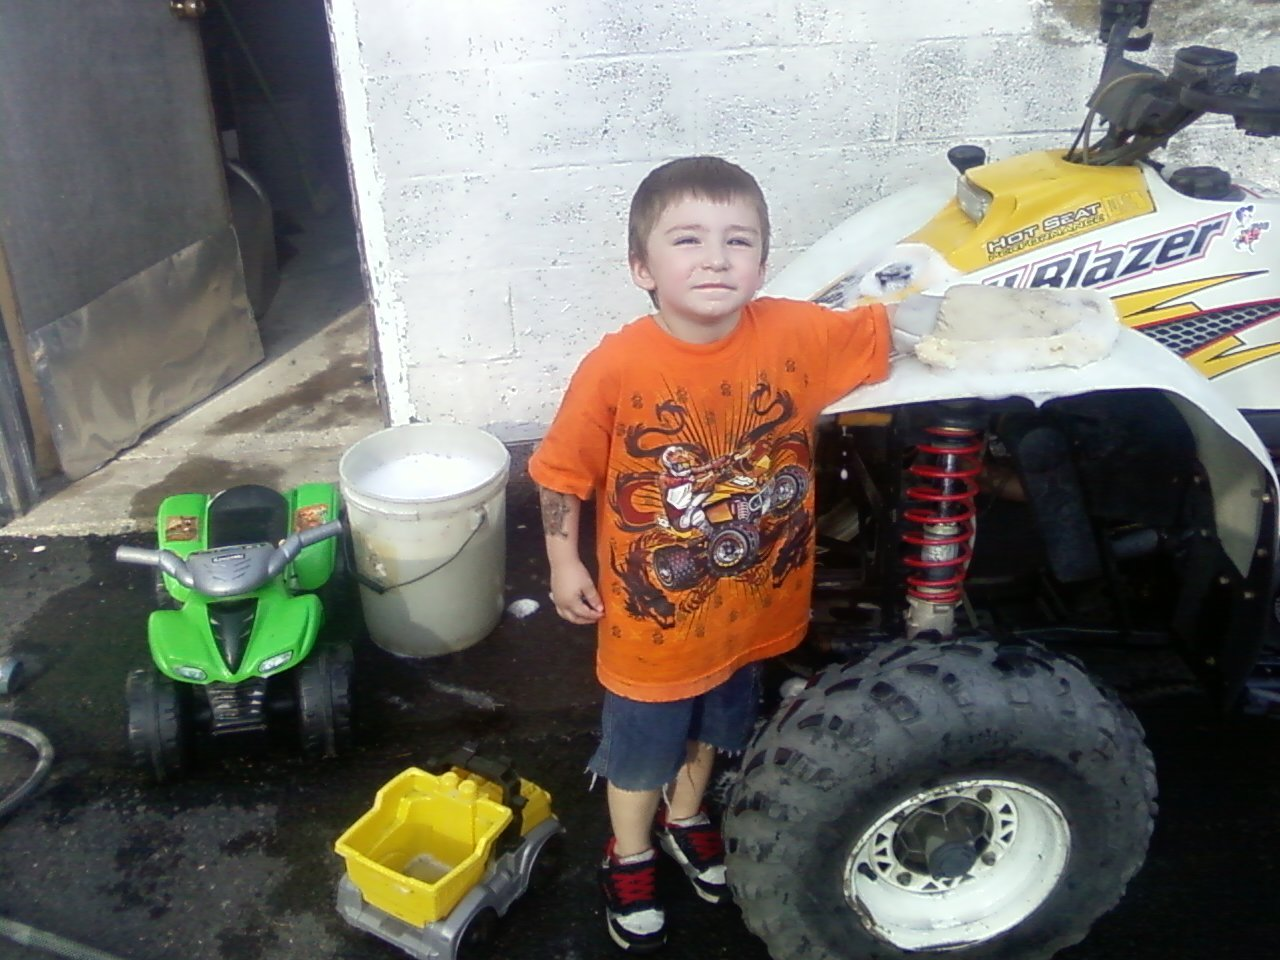 Gage washing quads